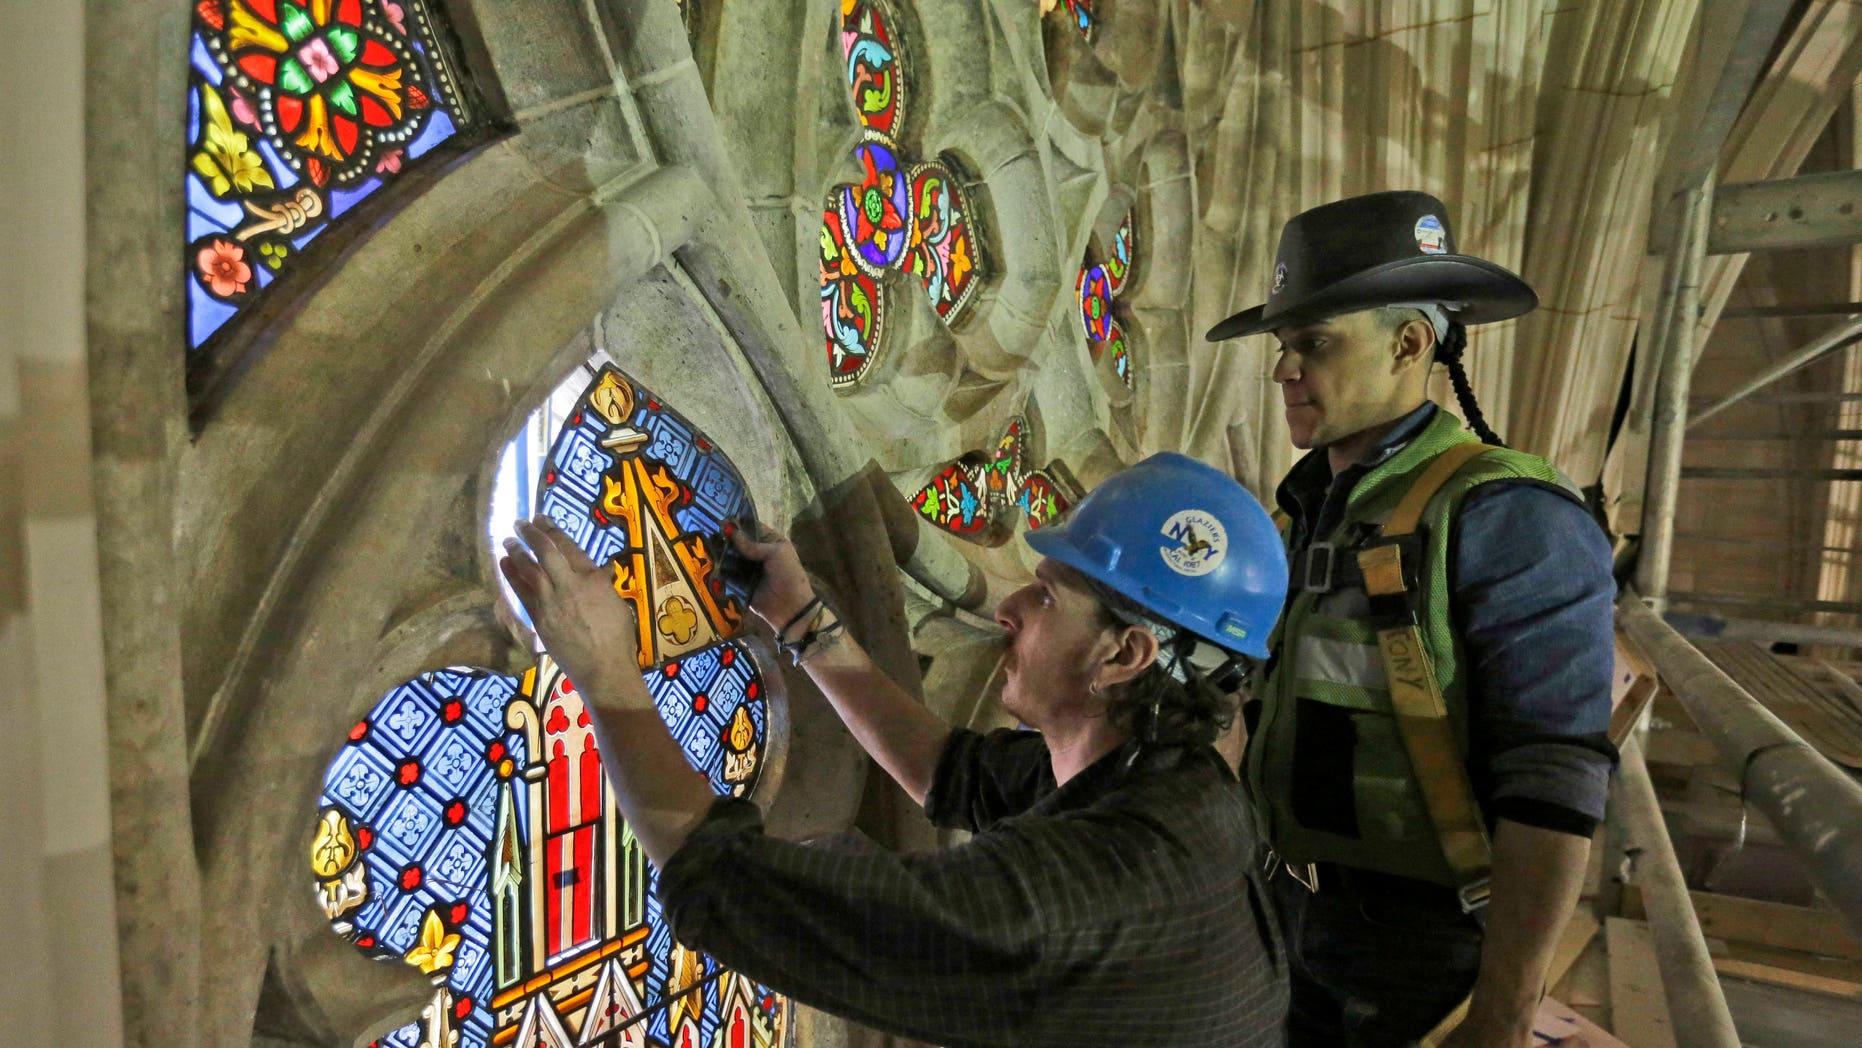 In this Wednesday, May 6, 2015 photo, master craftsman Todd Allen, left, and foreman Anthony Del Orbe install a restored stained glass panel at St. Patrick's Cathedral in New York. Workers cleaned and repaired the 3,700 individual panels in 75 stained glass windows, among other extensive renovation work. A three-year restoration project at the cathedral is coming to an end, just in time for a late September visit from Pope Francis. (AP Photo/Mary Altaffer)